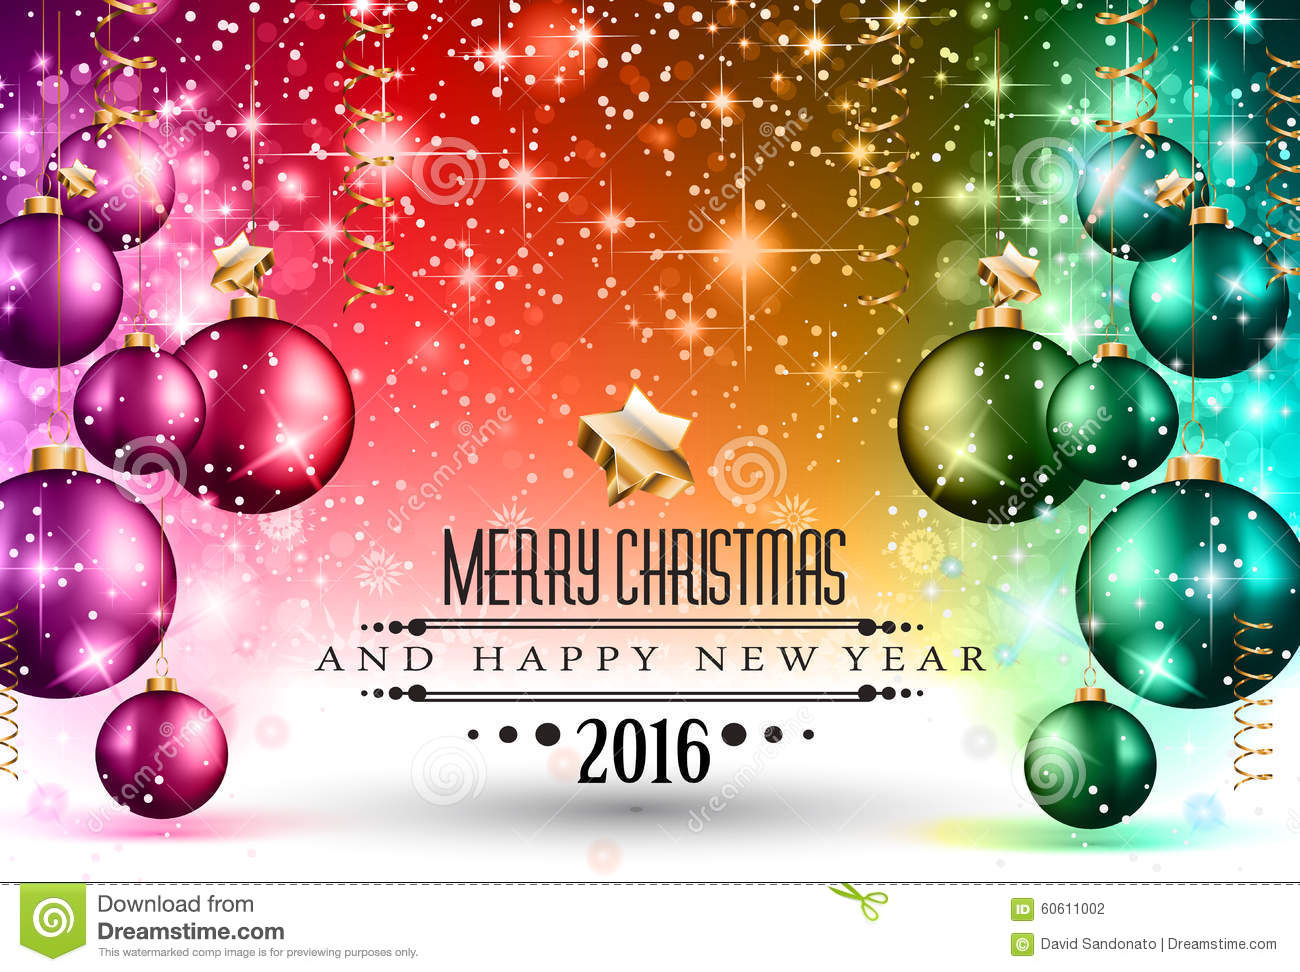 2016 christmas and happy new year party flyer stock vector 2016 christmas and happy new year party flyer stock photography stopboris Choice Image